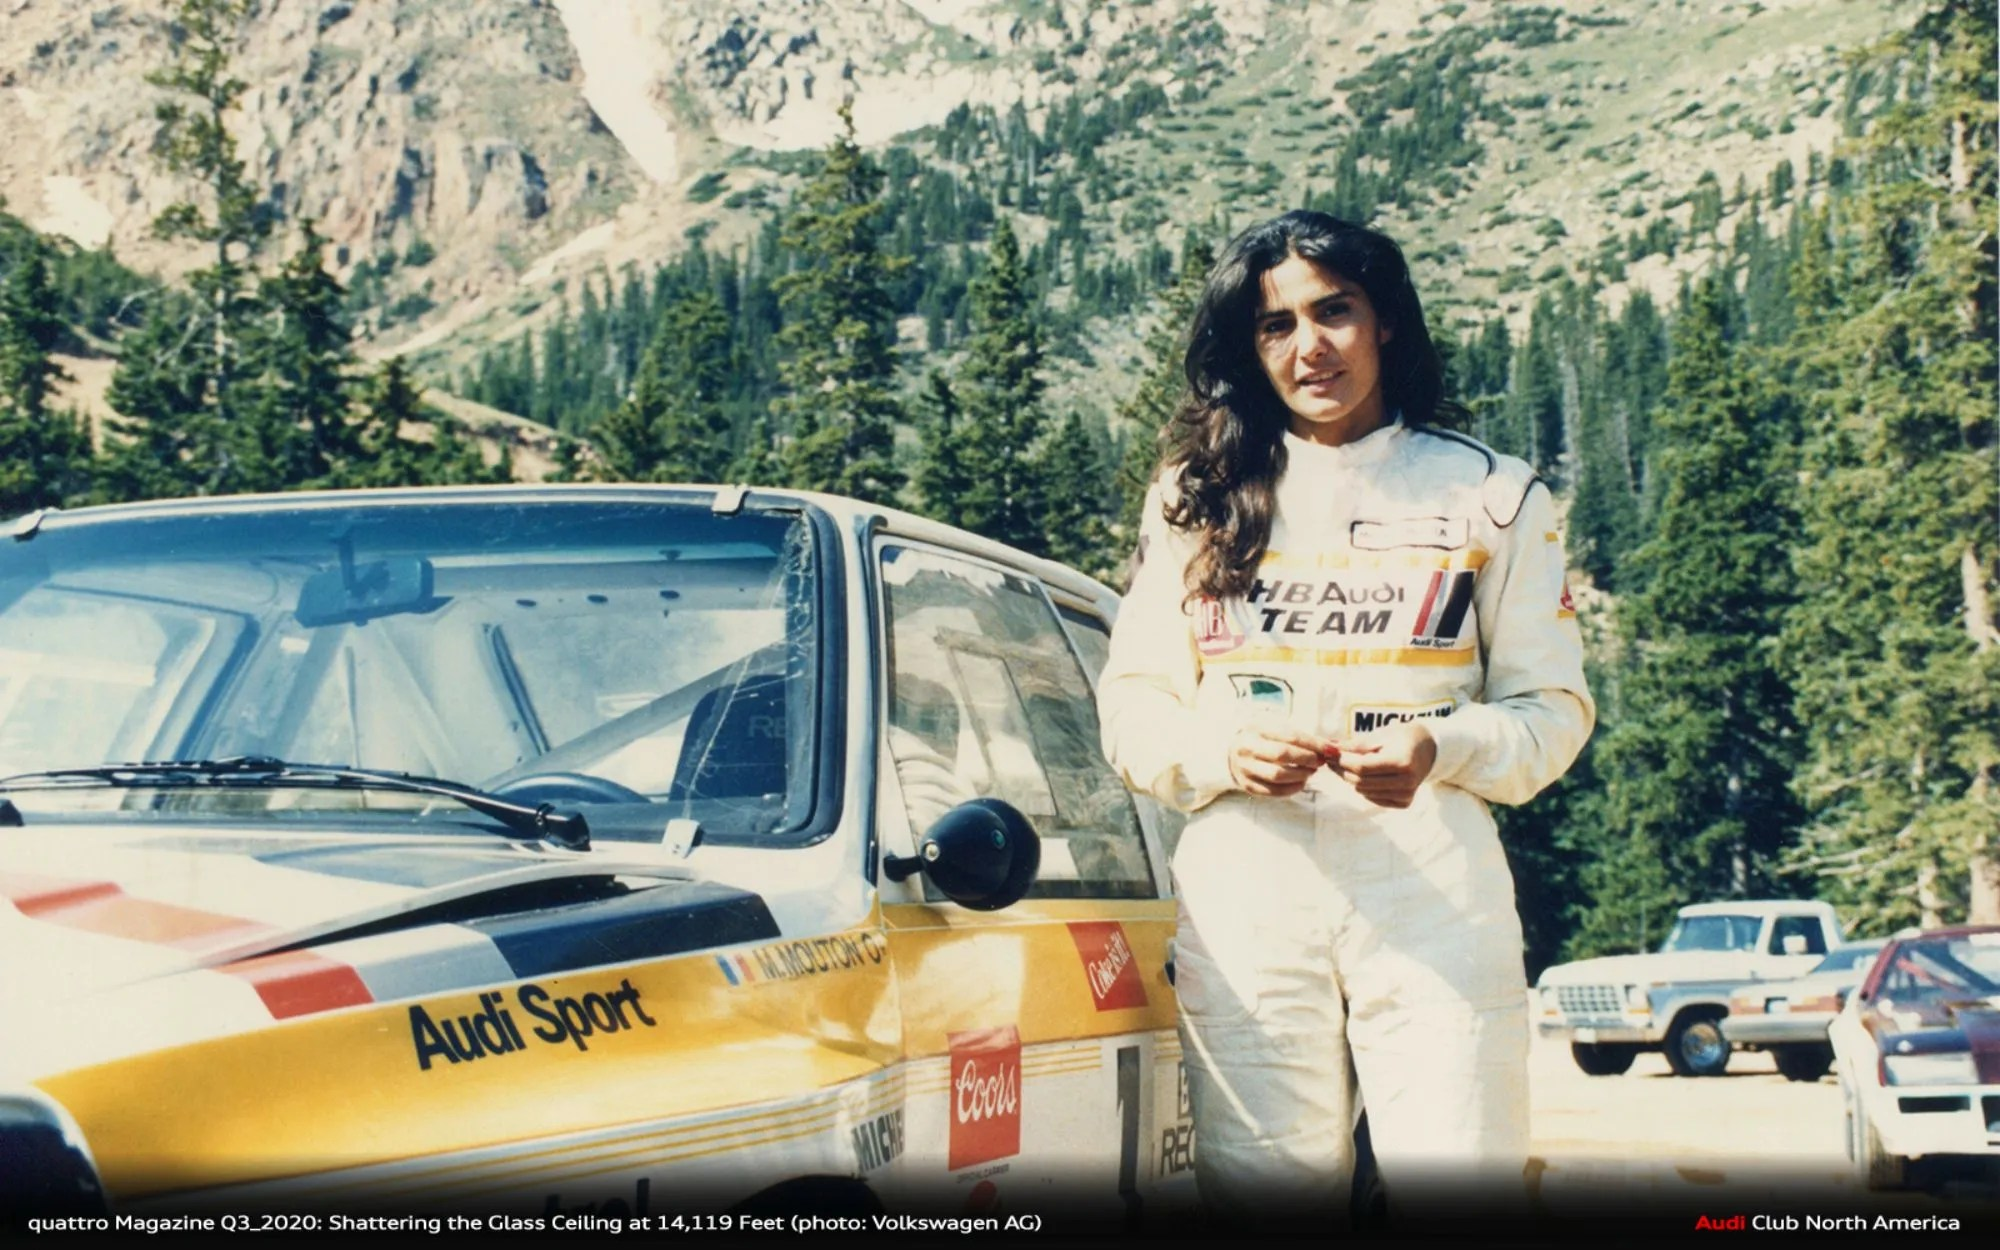 Shattering the Glass Ceiling at 14,119 Feet: Michèle Mouton & Her Record Run at Pike's Peak 35 Years On